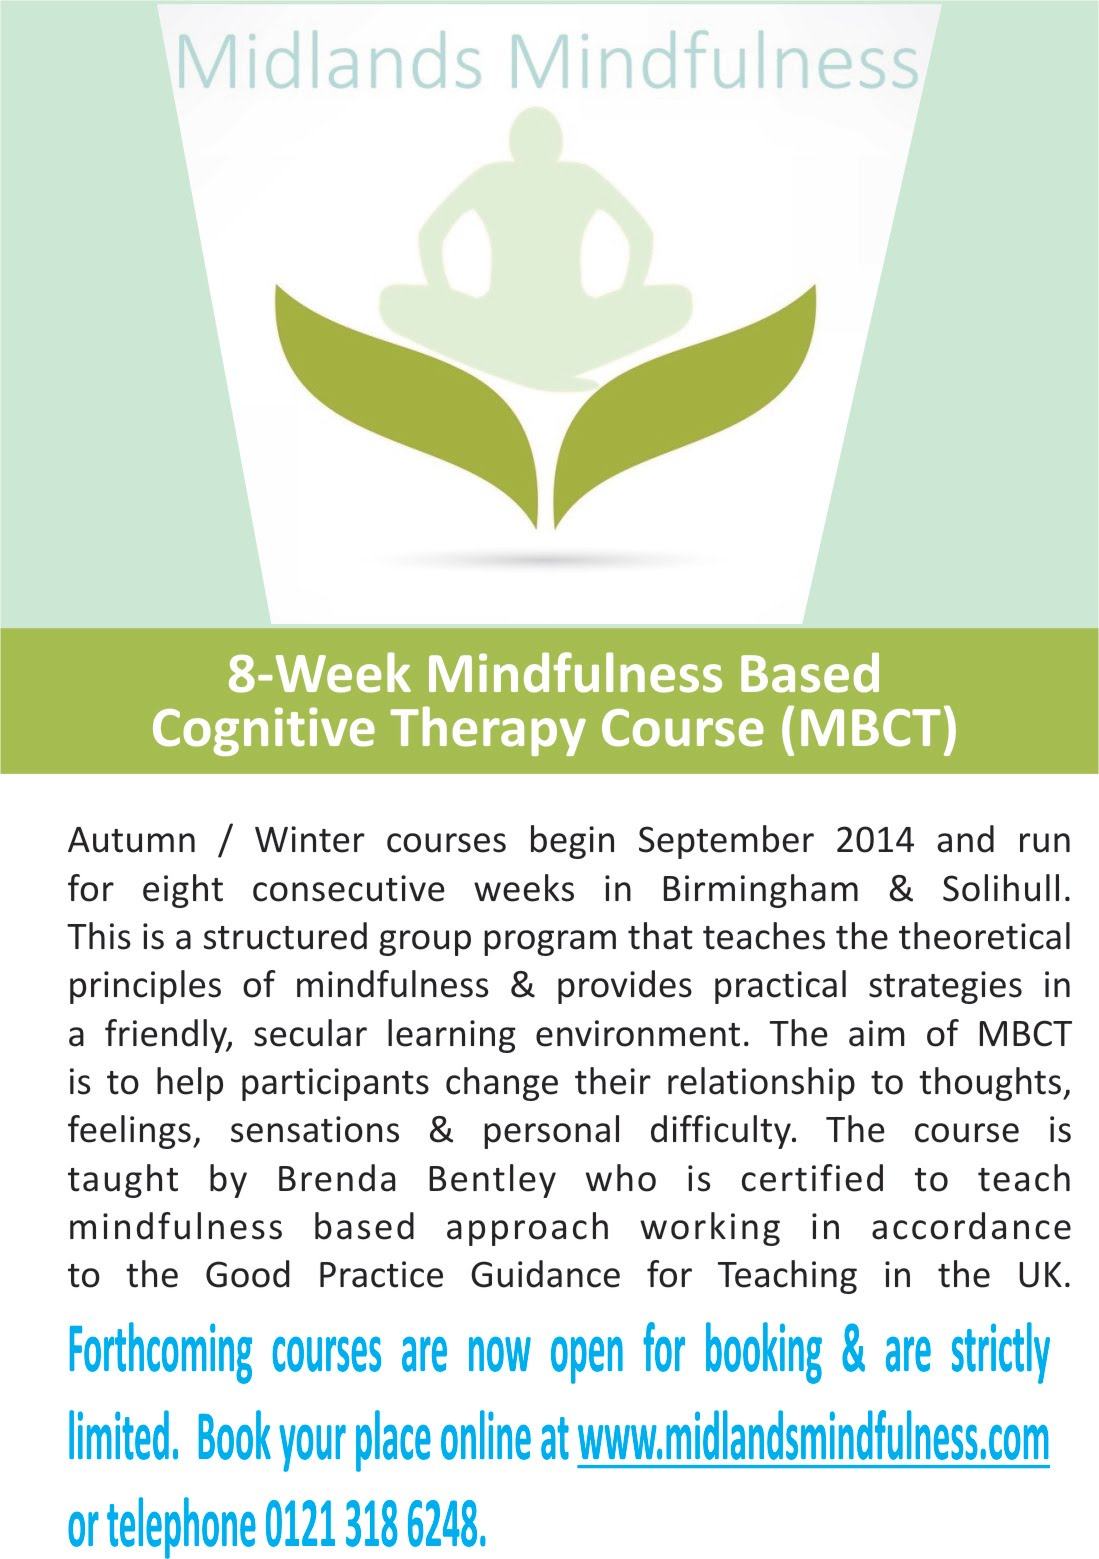 mindfulness courses in birmingham solihull leamington spa